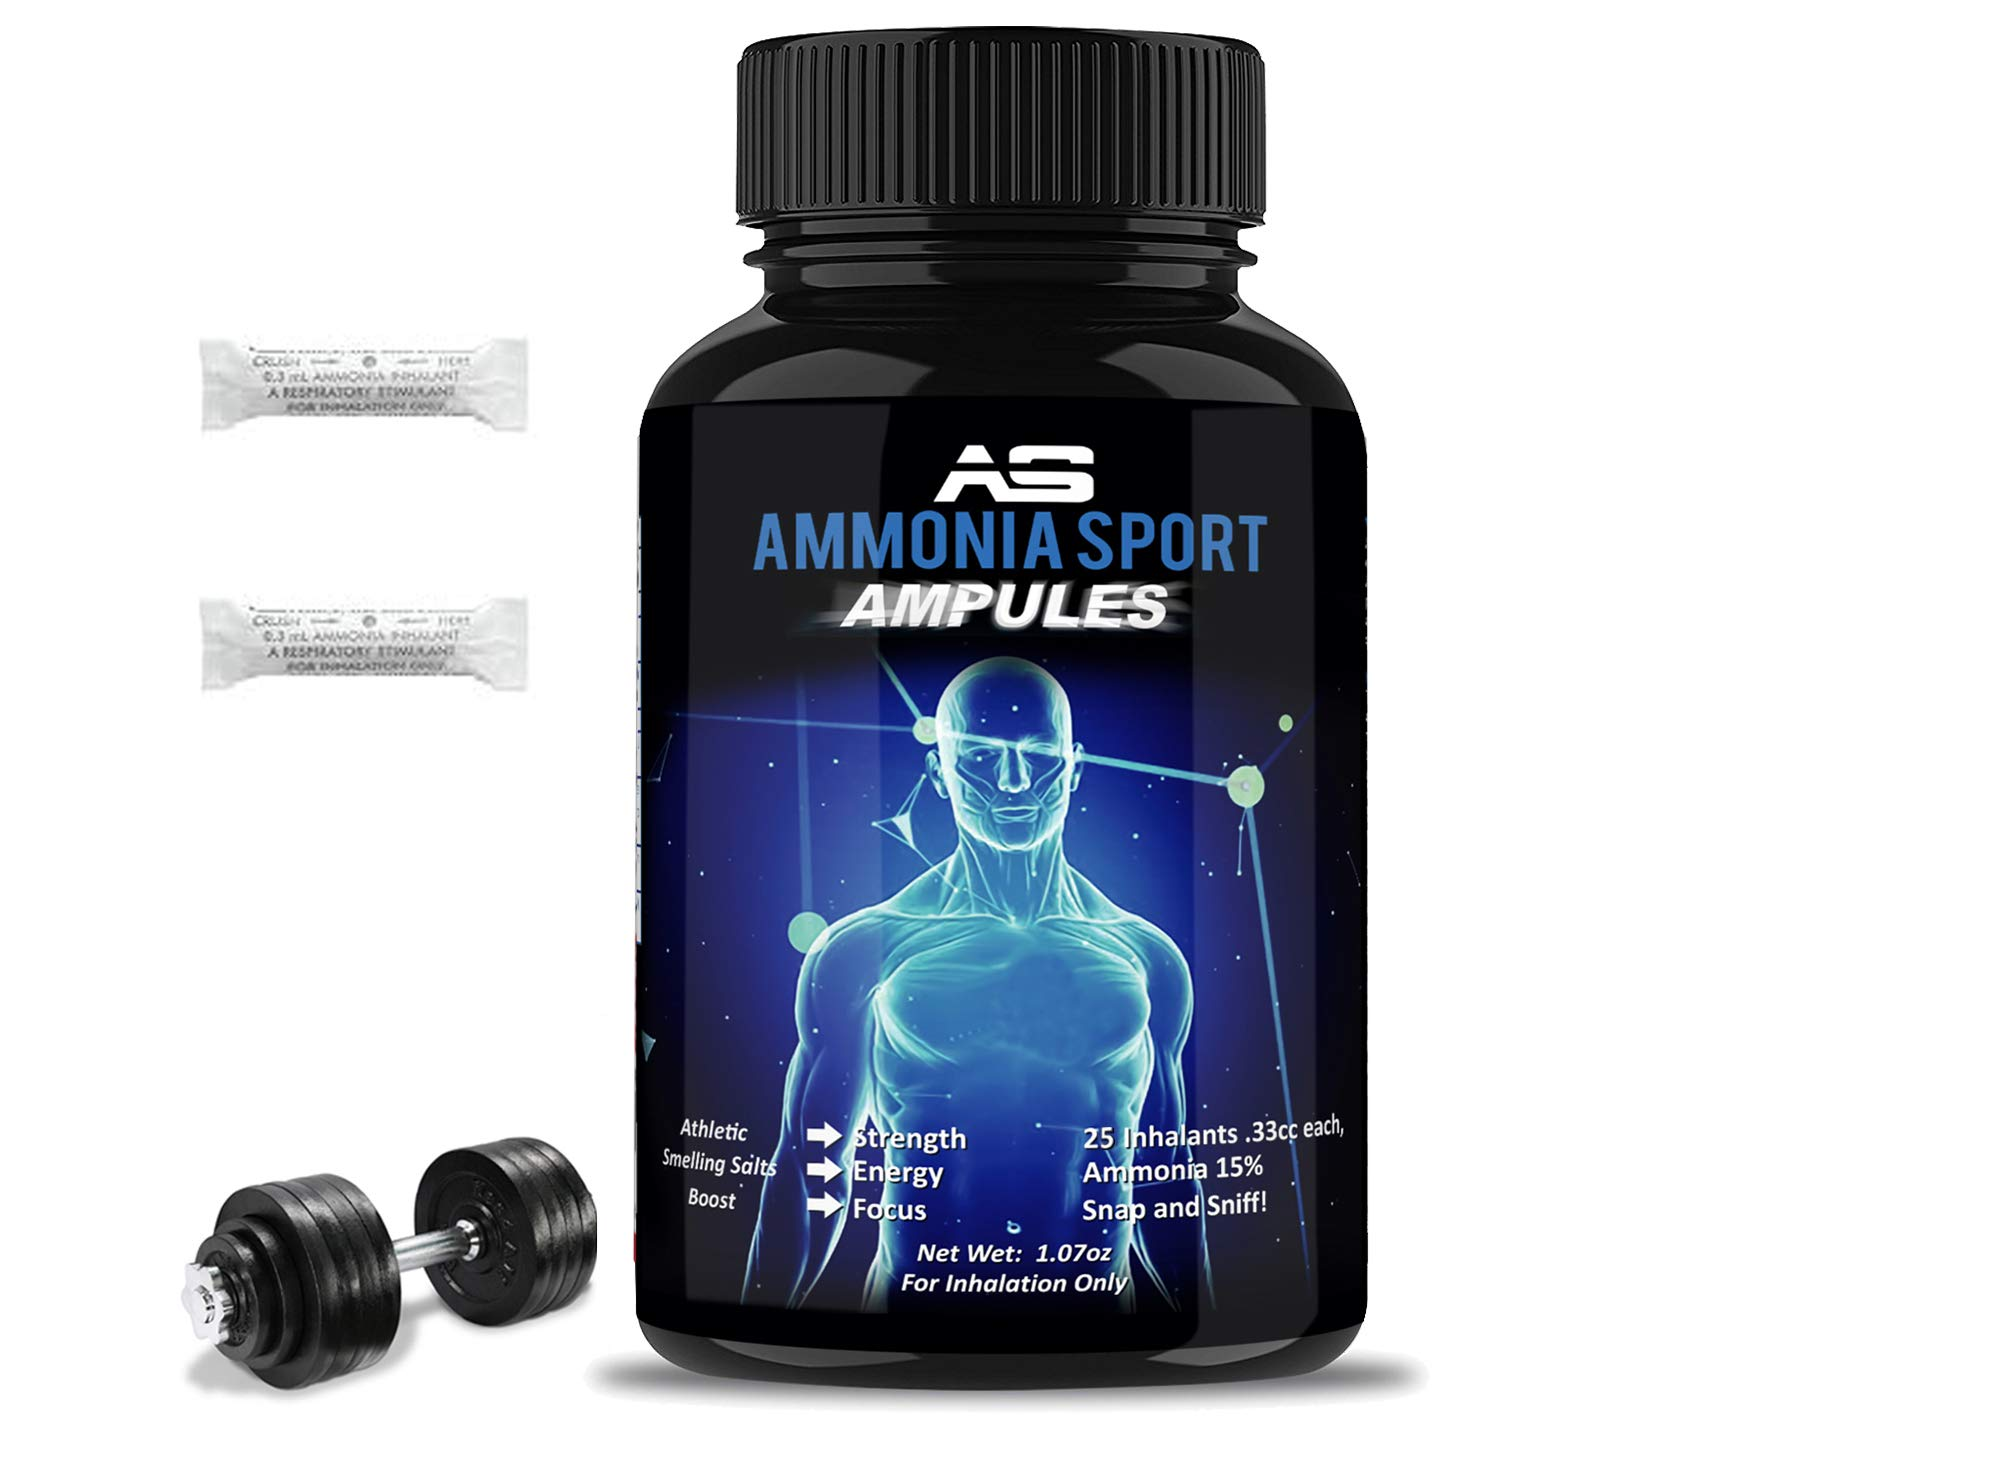 AmmoniaSport: Athletic Smelling Salts - Ampules (25) - Energy Booster - Instant Focus - Preworkout - Intraworkout - Ammonia Inhalant - Smelling Salt - Treat & Prevent Fainting - Nausea Supplement by AmmoniaSport